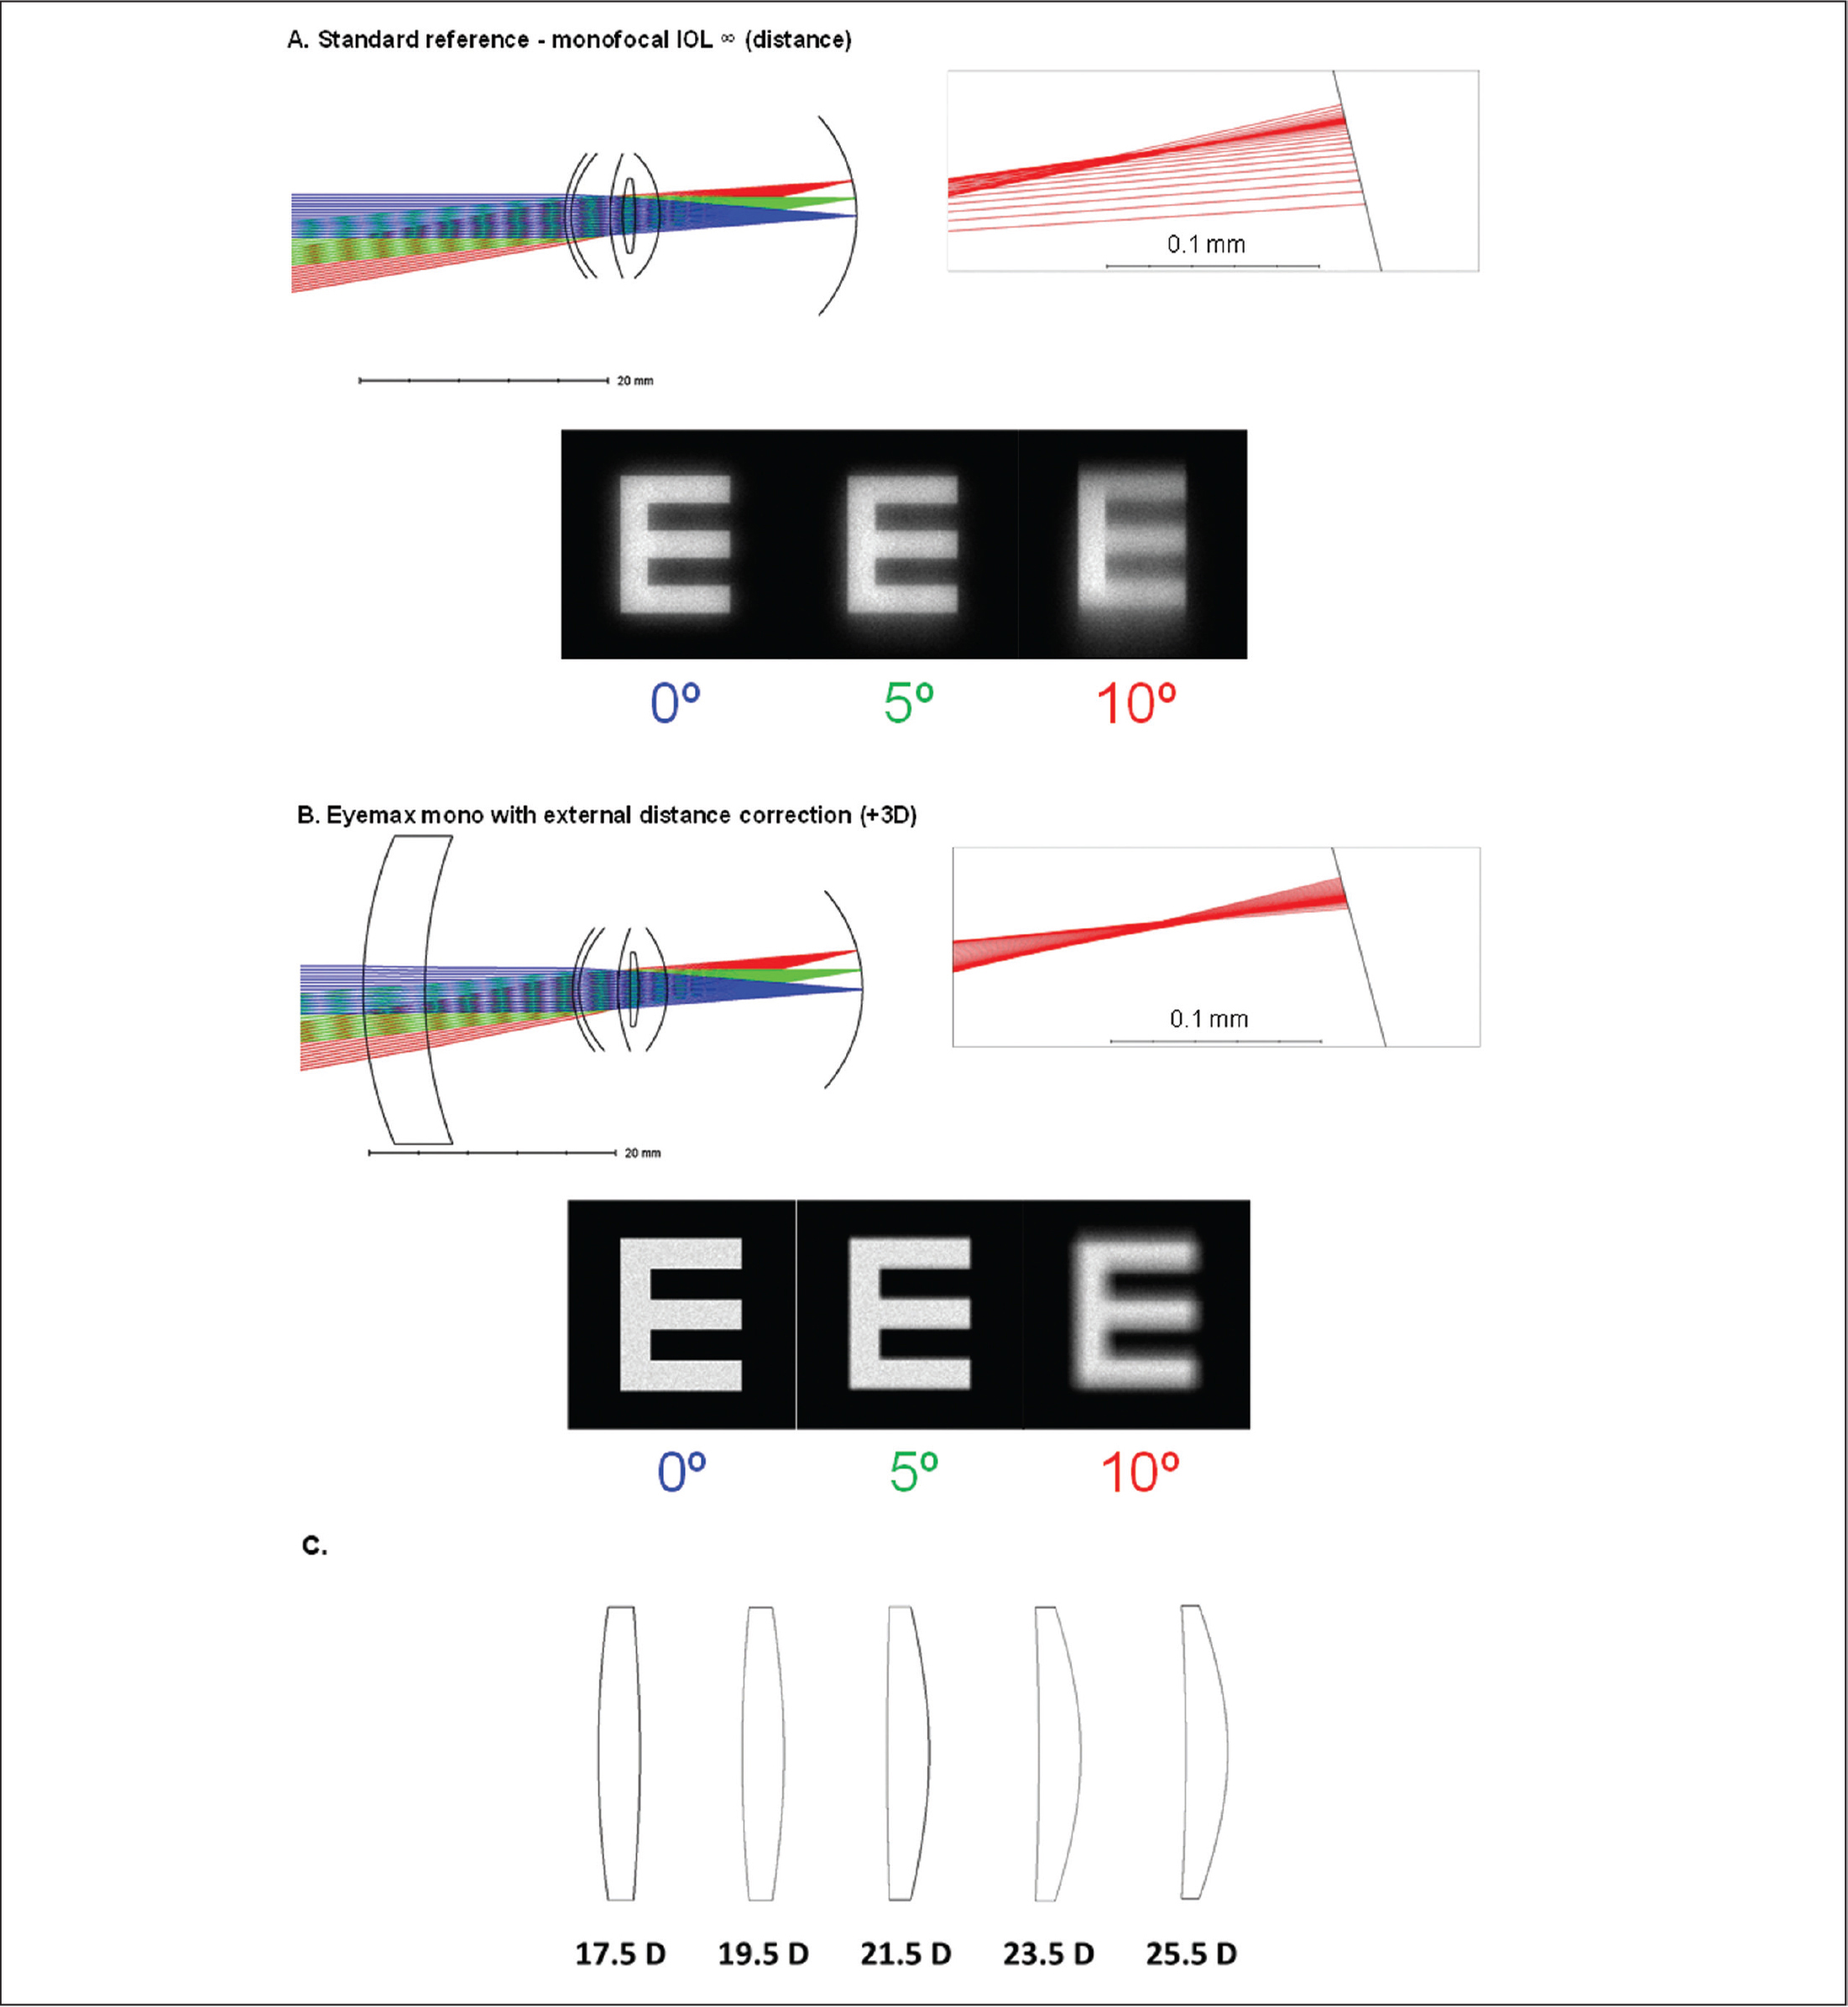 Ray-tracing diagrams of a schematic eye and simulated retinal images at 0º, 5º, and 10º of retinal eccentricity with (A) a standard monofocal intraocular lens (IOL) and (B) the Eyemax mono IOL (LEH Pharma, London, United Kingdom) with external spectacle correction. (C) Representative Eyemax IOLs for different powers are also shown. Rays at different eccentricities are represented in different colors: blue lines at 0° of retinal eccentricity, green lines at 5°, and red lines at 10°. The effect of each arrangement at 10° is shown in more detail to the right of each of the schematic eyes and the simulated retinal images of Snellen E optotypes at each eccentricity (sized for 0.4 decimal visual acuity) are shown below. The standard monofocal IOL is observed to generate image blur at progressive retinal eccentricities and this is most obvious at 10° of retinal eccentricity, with significant degradation of the simulated retinal images. Rays at the same eccentricities are much more tightly focused in the arrangement with the Eyemax IOL, which is designed to optimize image quality in all areas of the macula up to 10° of retinal eccentricity, resulting in a significant improvement in the quality of the simulated retinal images. The Eyemax IOL may be used to target emmetropia but the use of the external spectacle correction affords 14% magnification for distance with additional magnification for near. (C) A set of representative Eyemax IOLs shows that the dioptric power under the lenses corresponds to the IOL power that would generate emmetropia in every eye. D = diopters